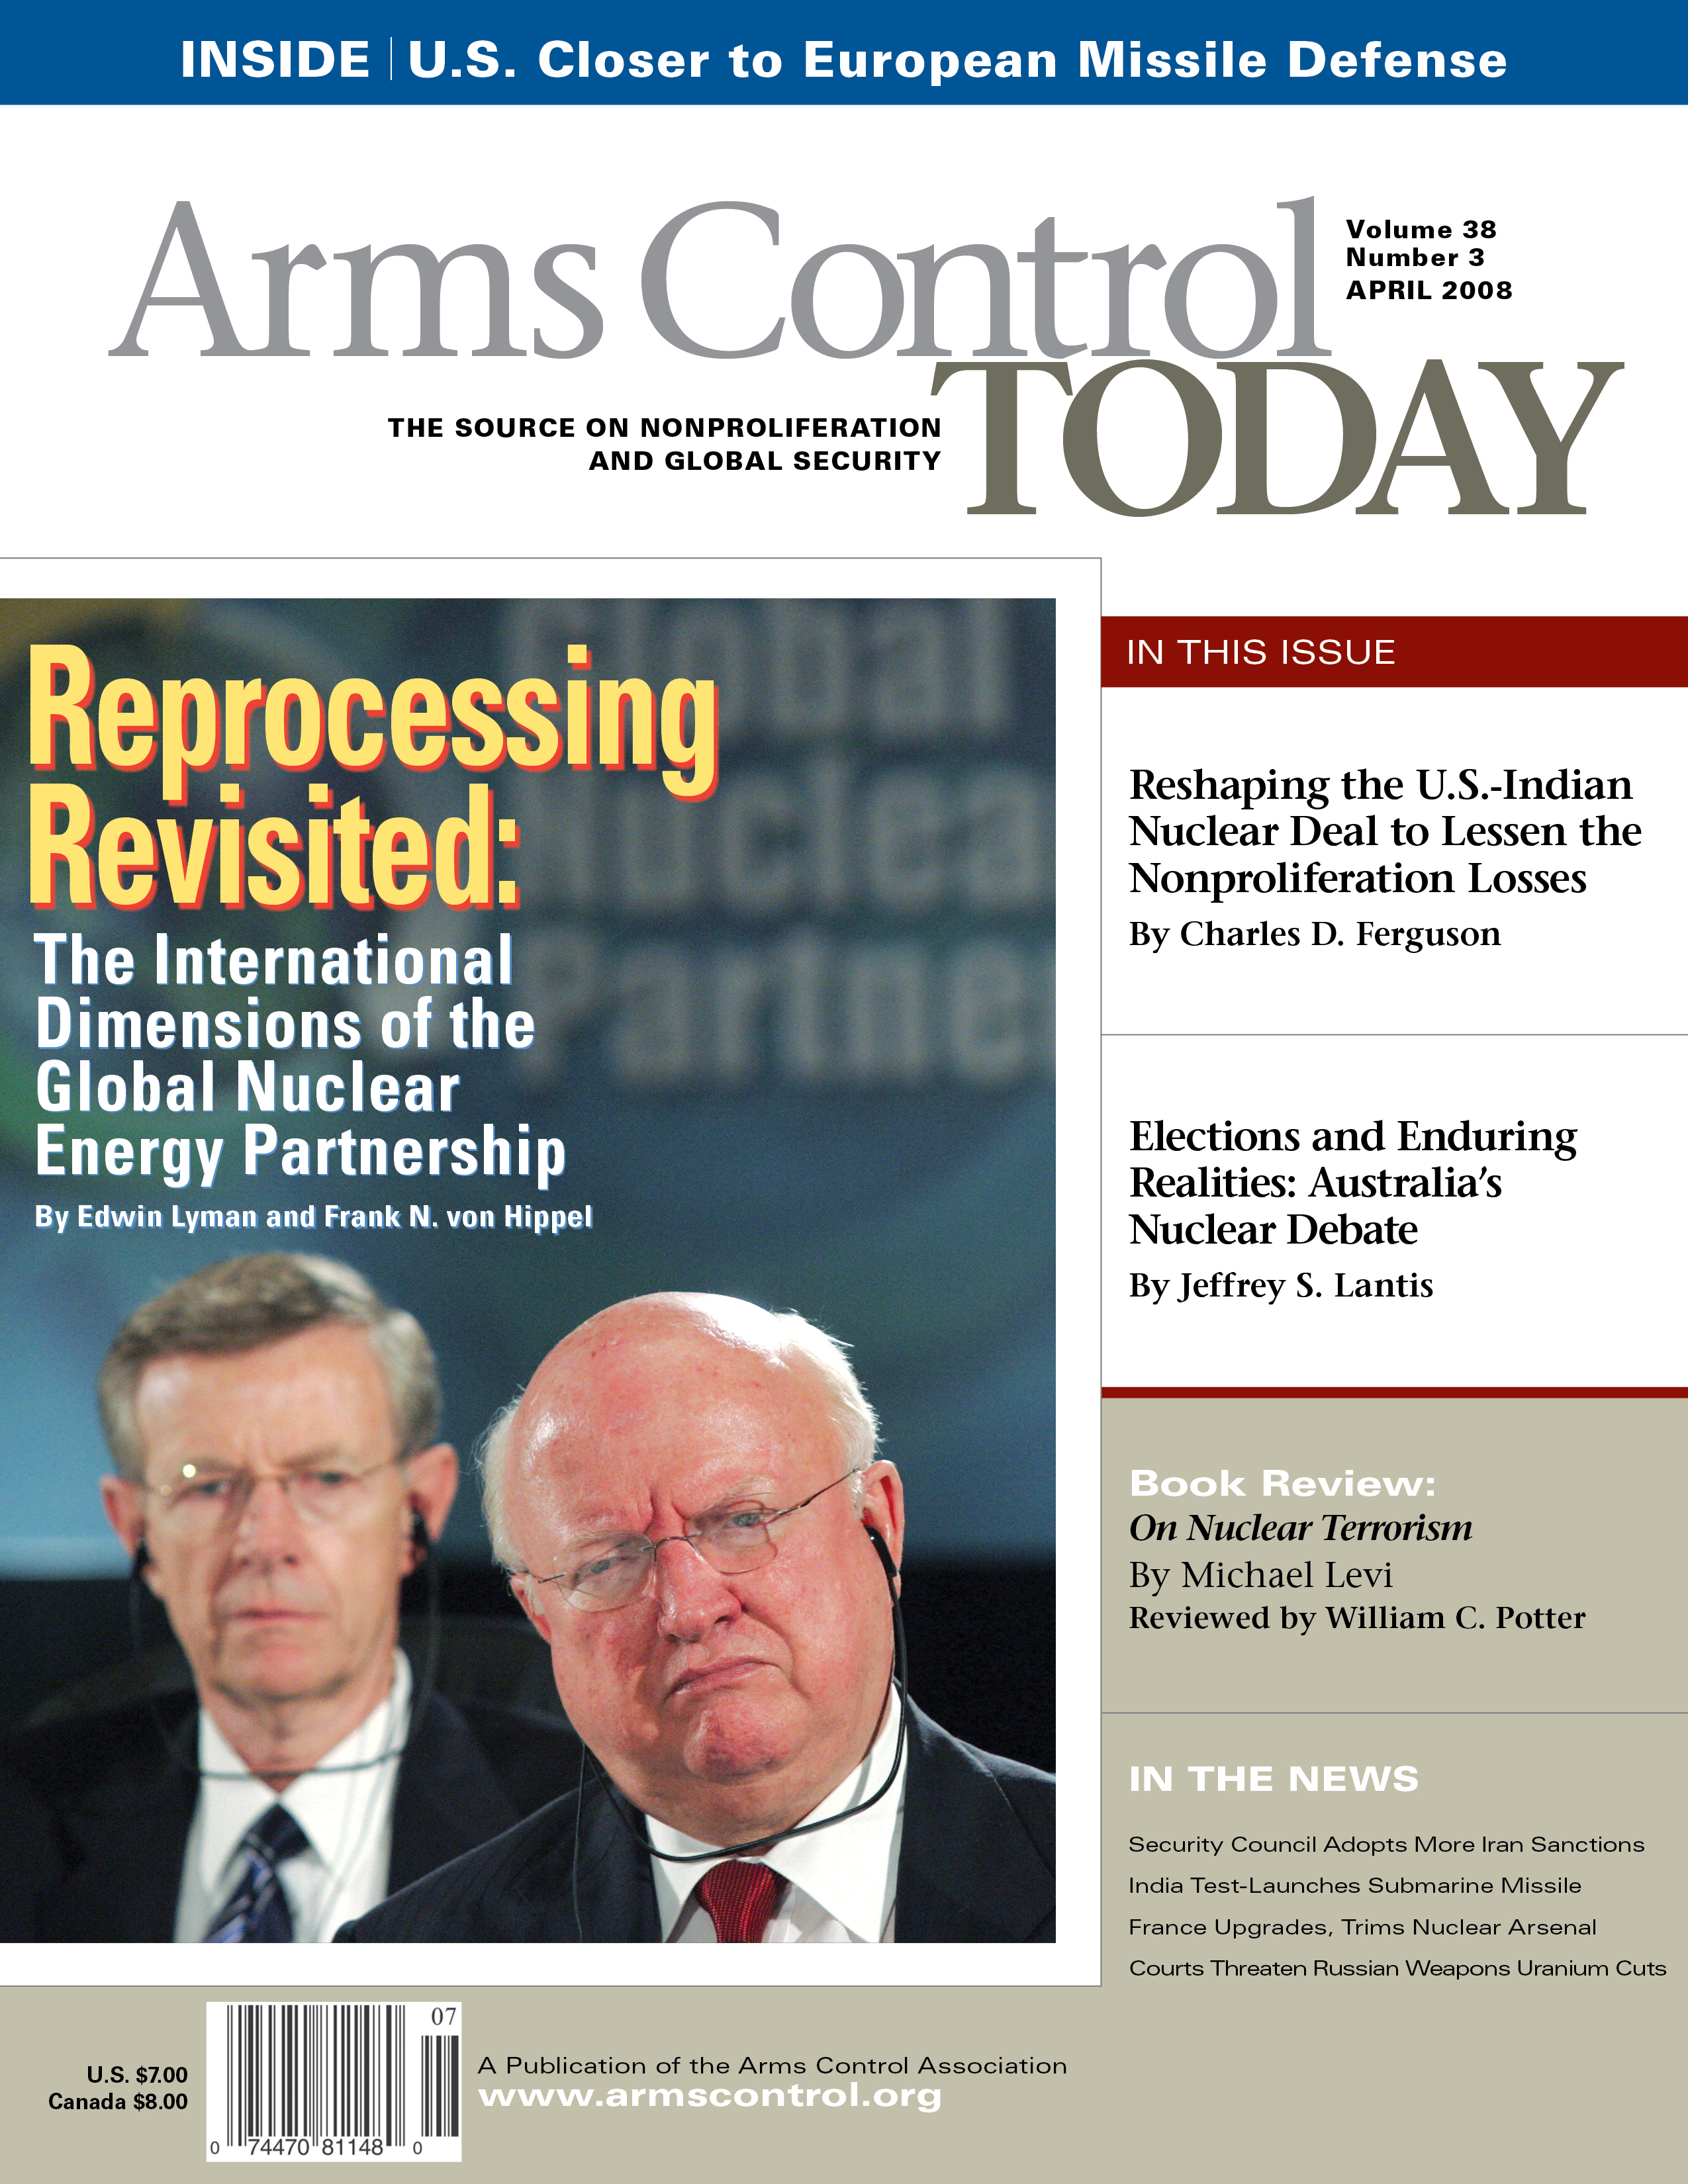 April 2008 Arms Control Association Cmd Concentrace Trace Mineral 4000 Drops